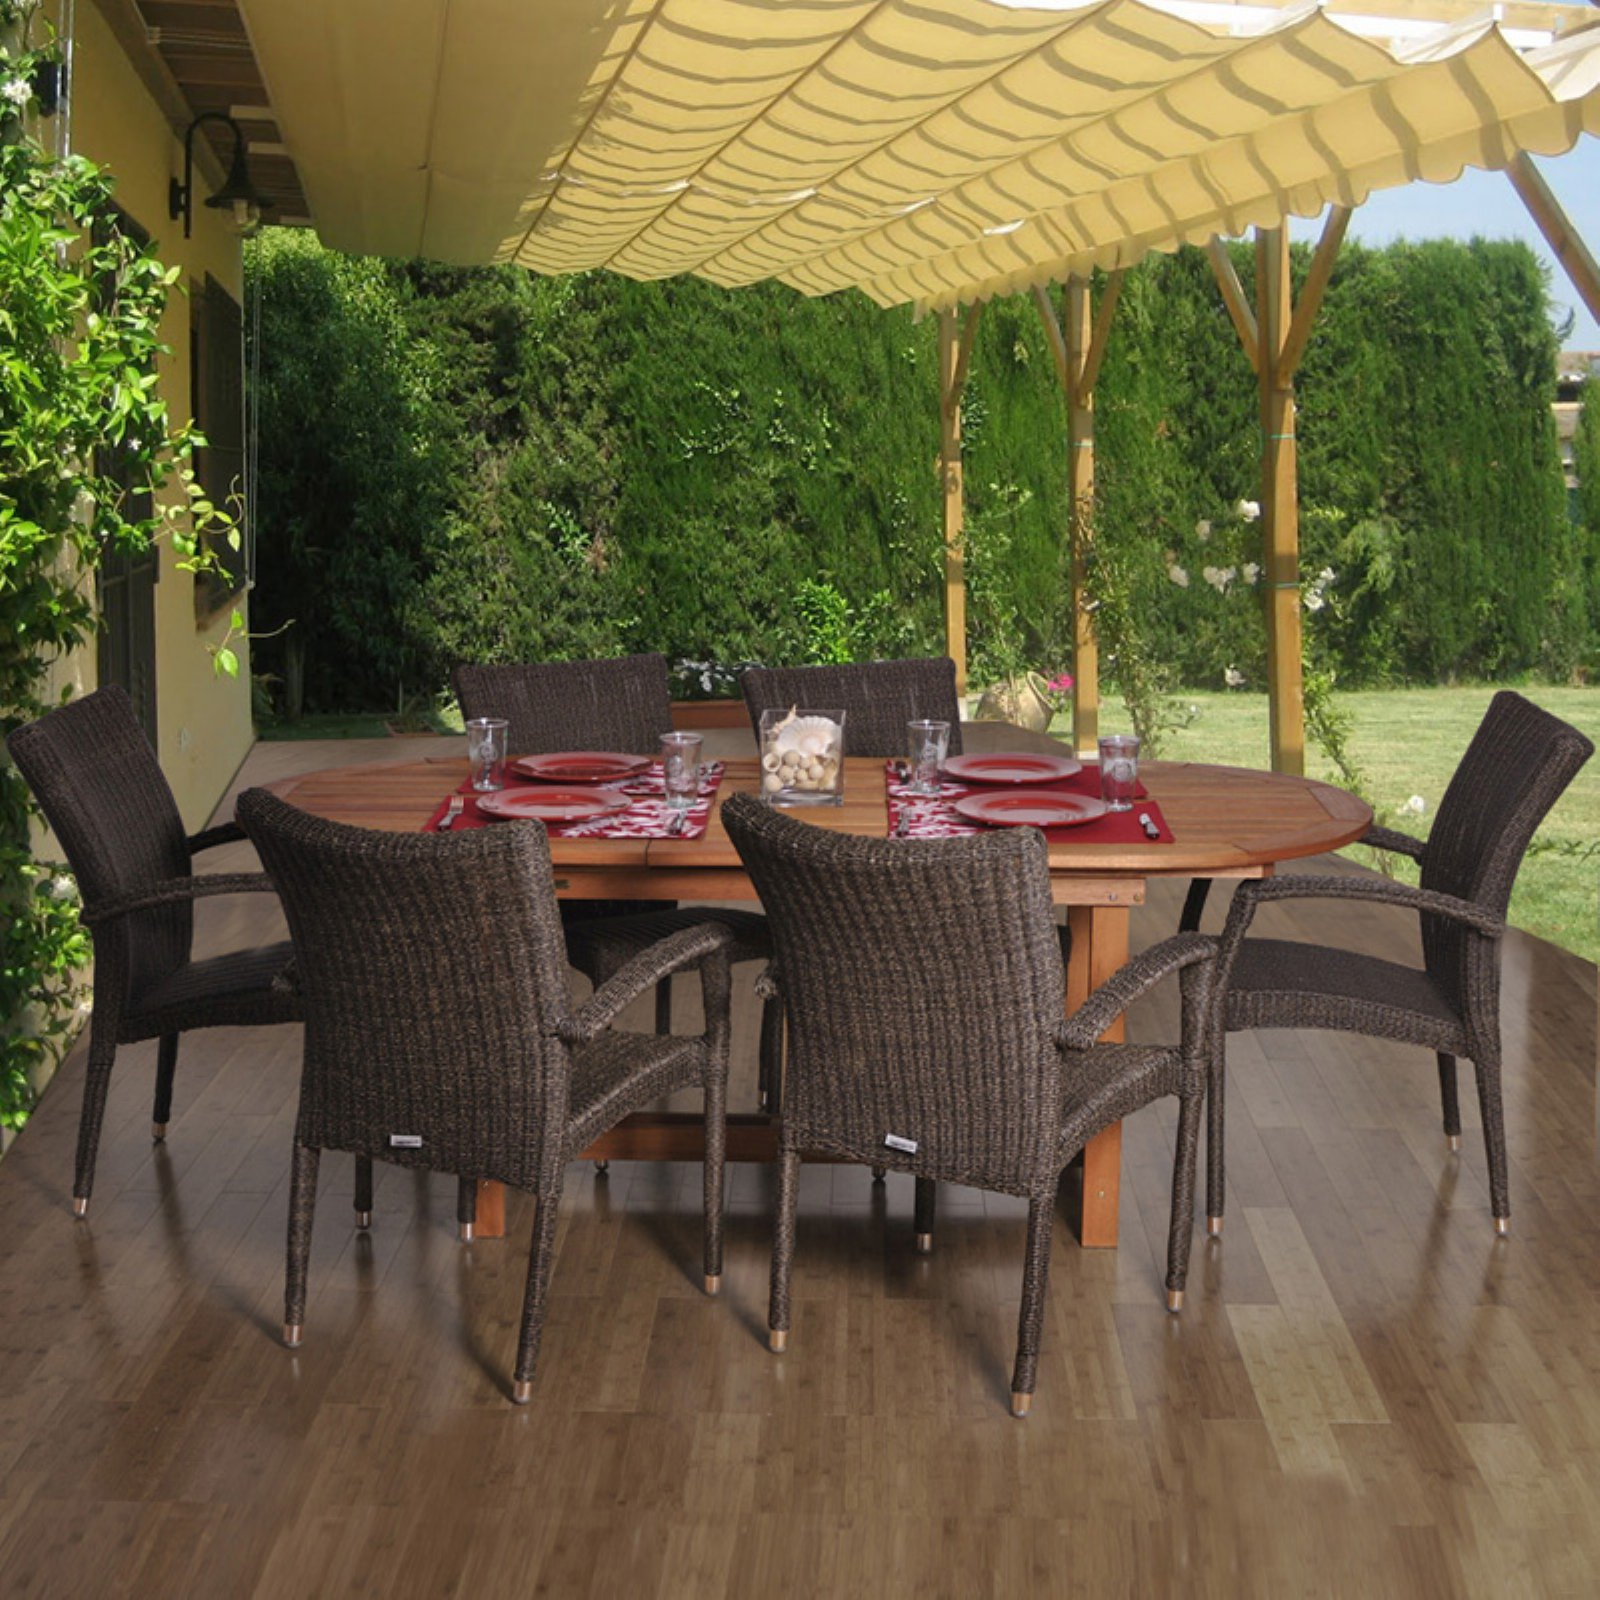 Amazonia Lemans Deluxe Oval Eucalyptus And Wicker Dining Set - Seats 6